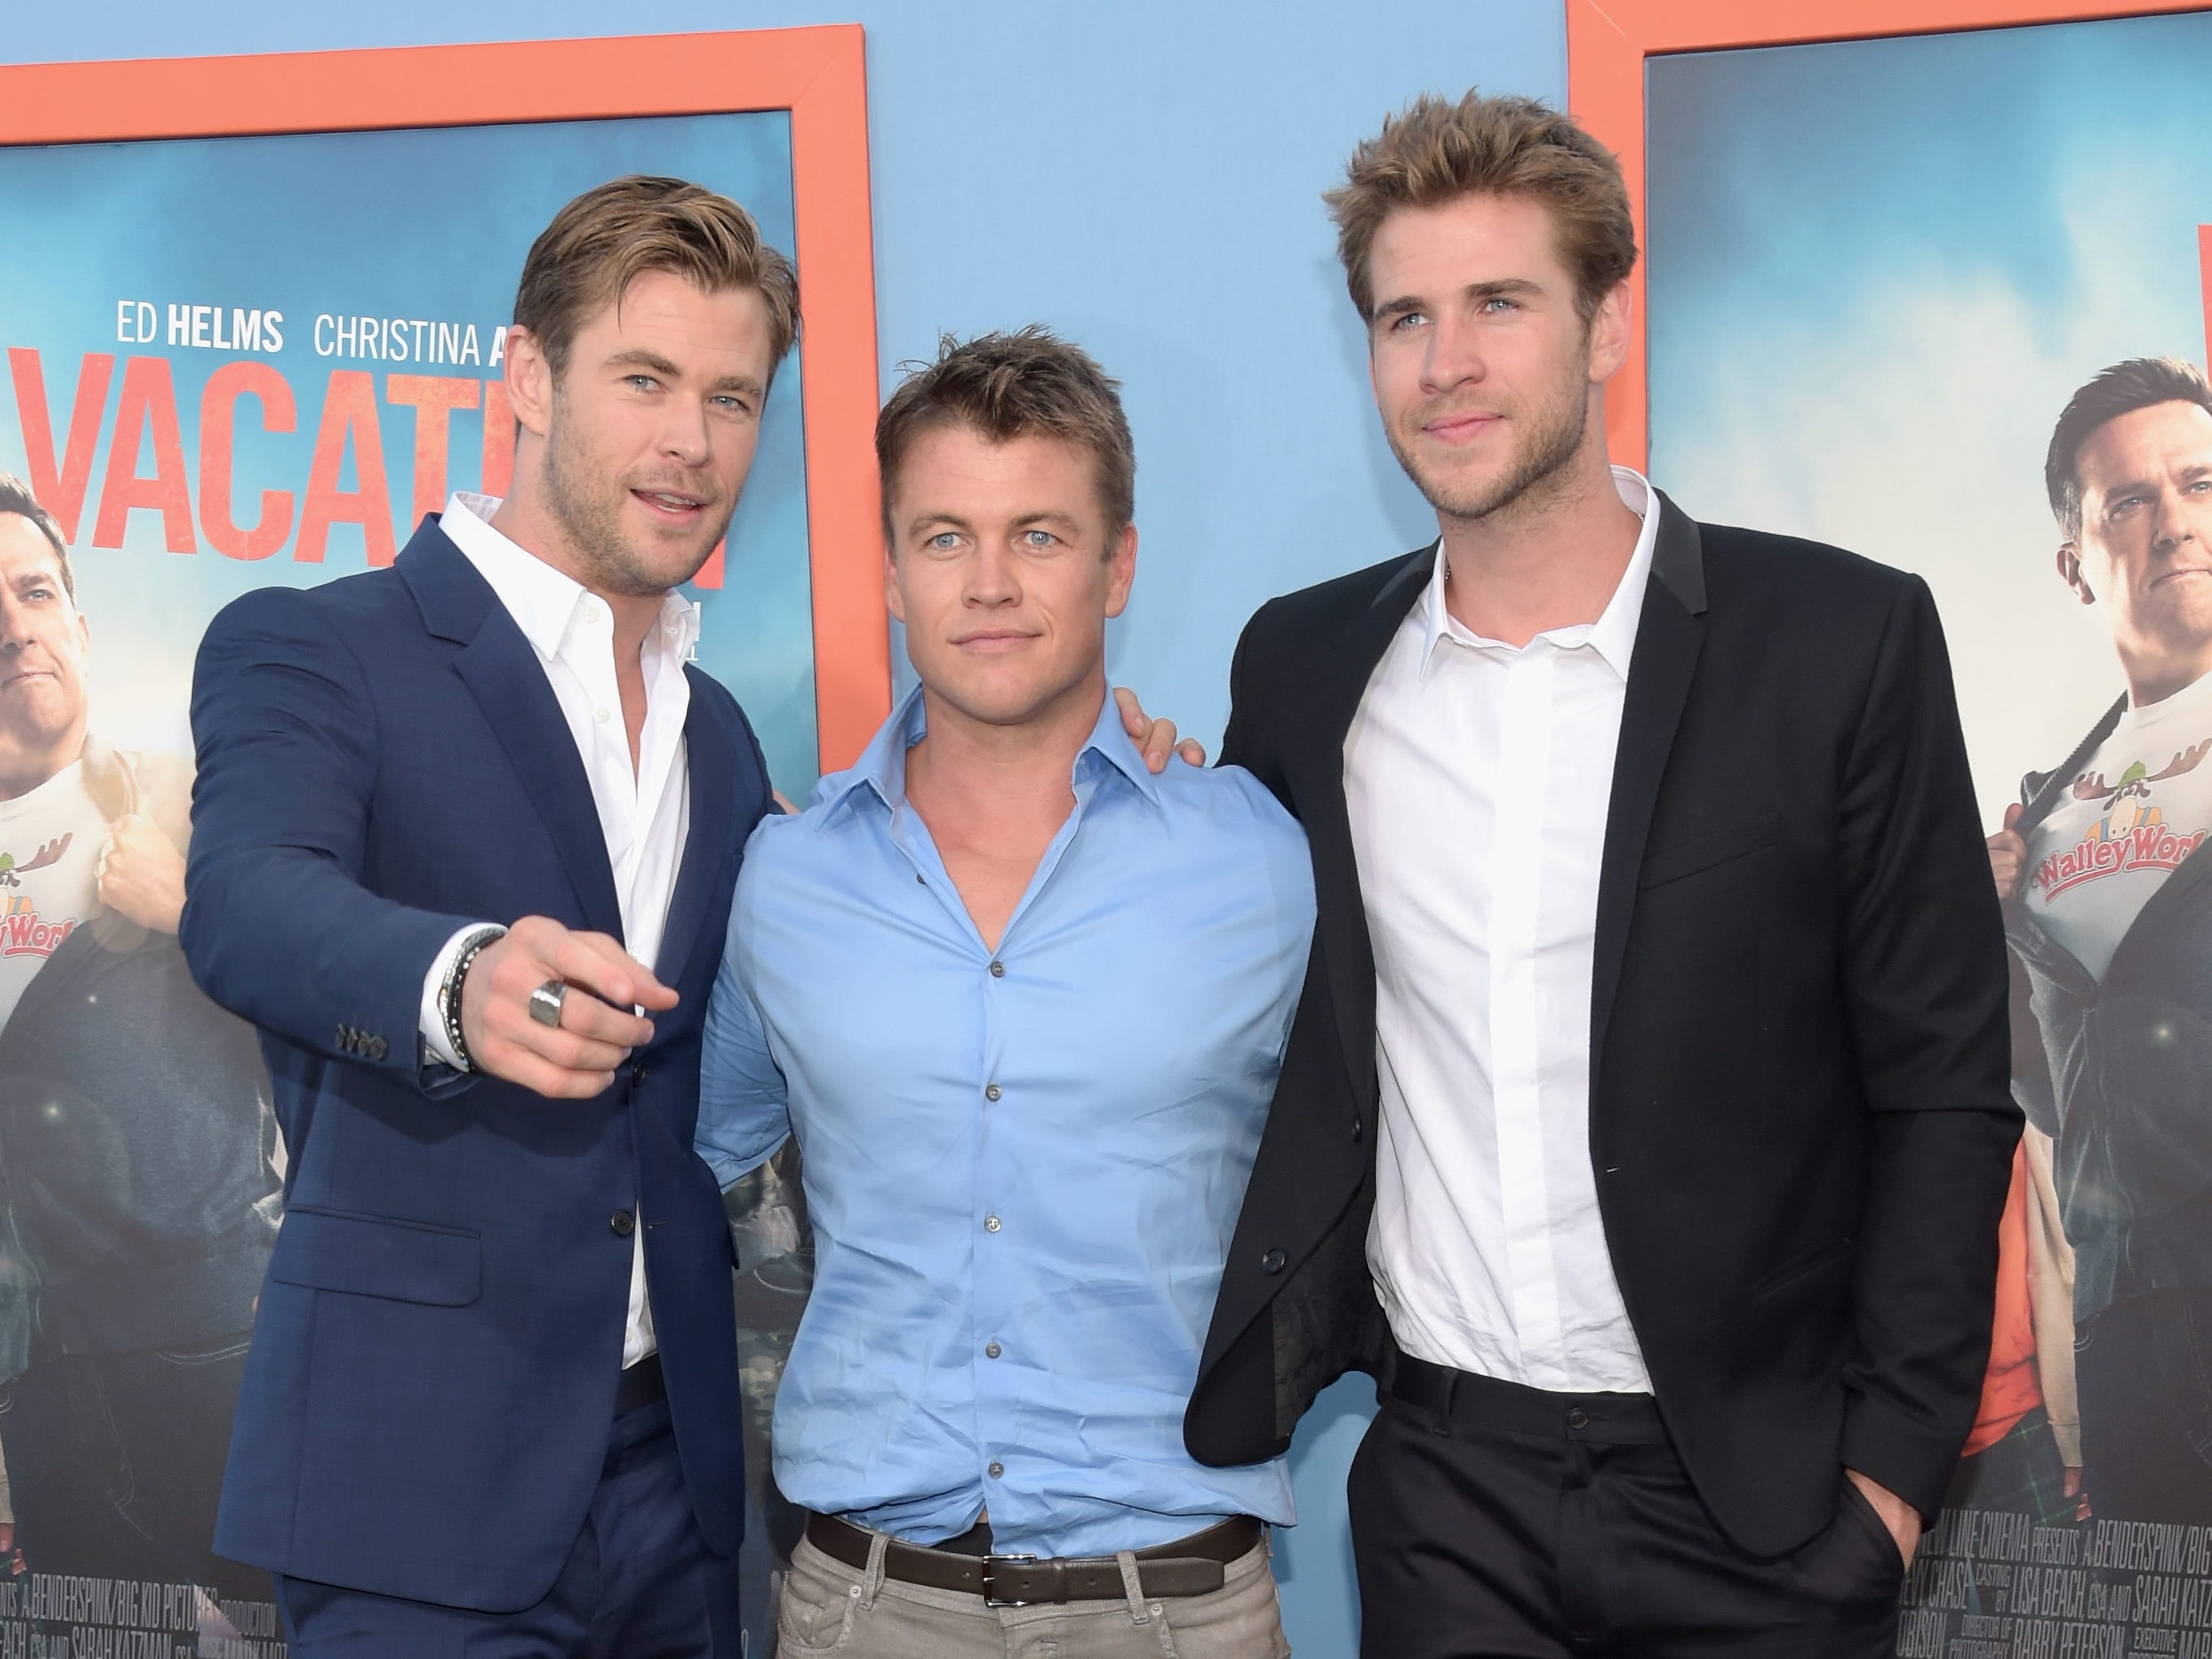 "WESTWOOD, CA - JULY 27:  (L-R) Actors Chris Hemsworth, Luke Hemsworth and Liam Hemsworth attend the premiere of Warner Bros. ""Vacation"" at Regency Village Theatre on July 27, 2015 in Westwood, California.  (Photo by Jason Kempin/Getty Images) ORG XMIT: 565893013 ORIG FILE ID: 482164338"